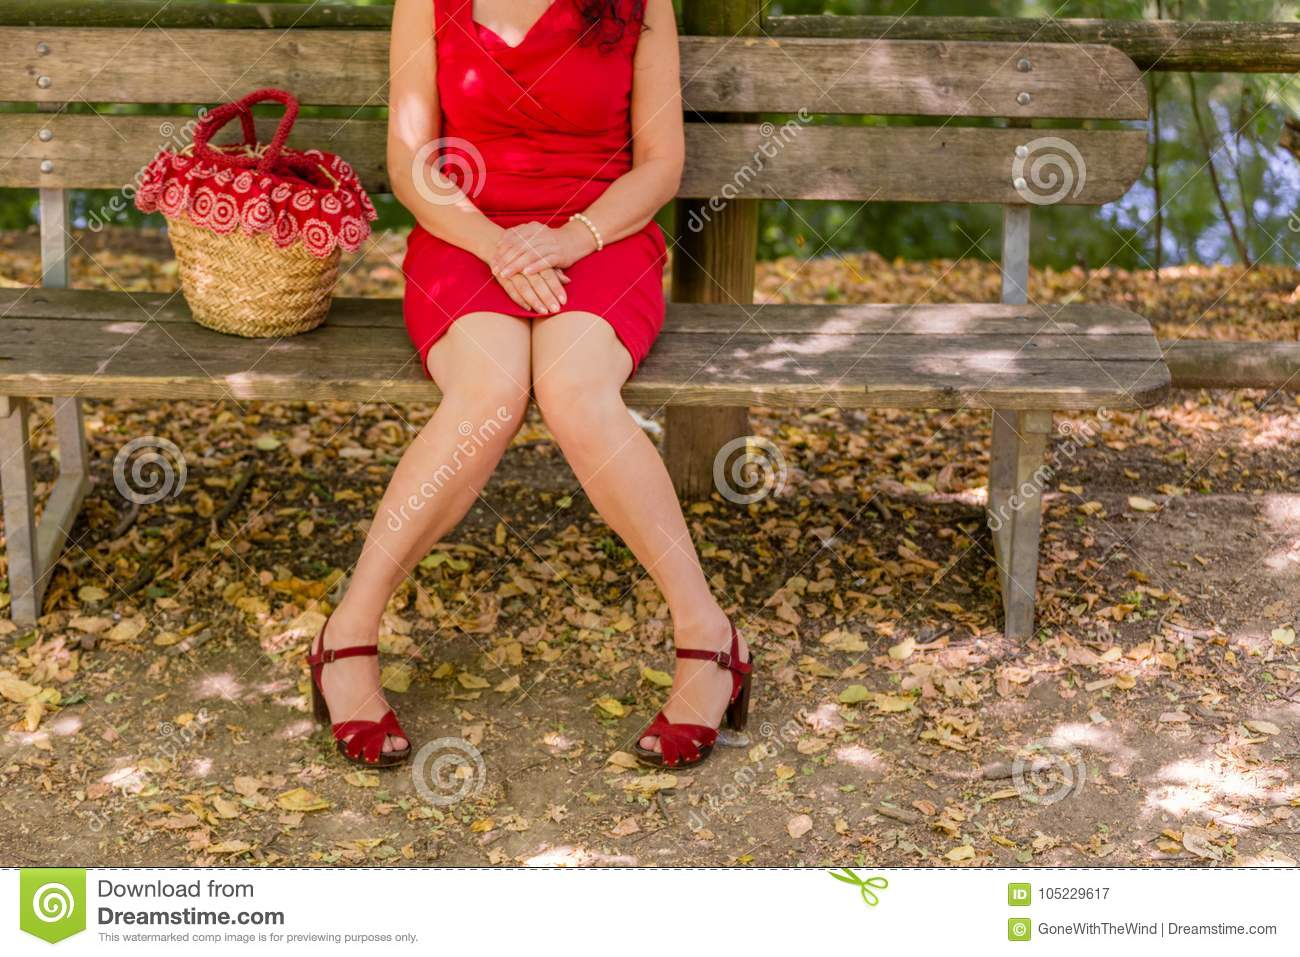 Woman with legs apart and keeping knees in touch